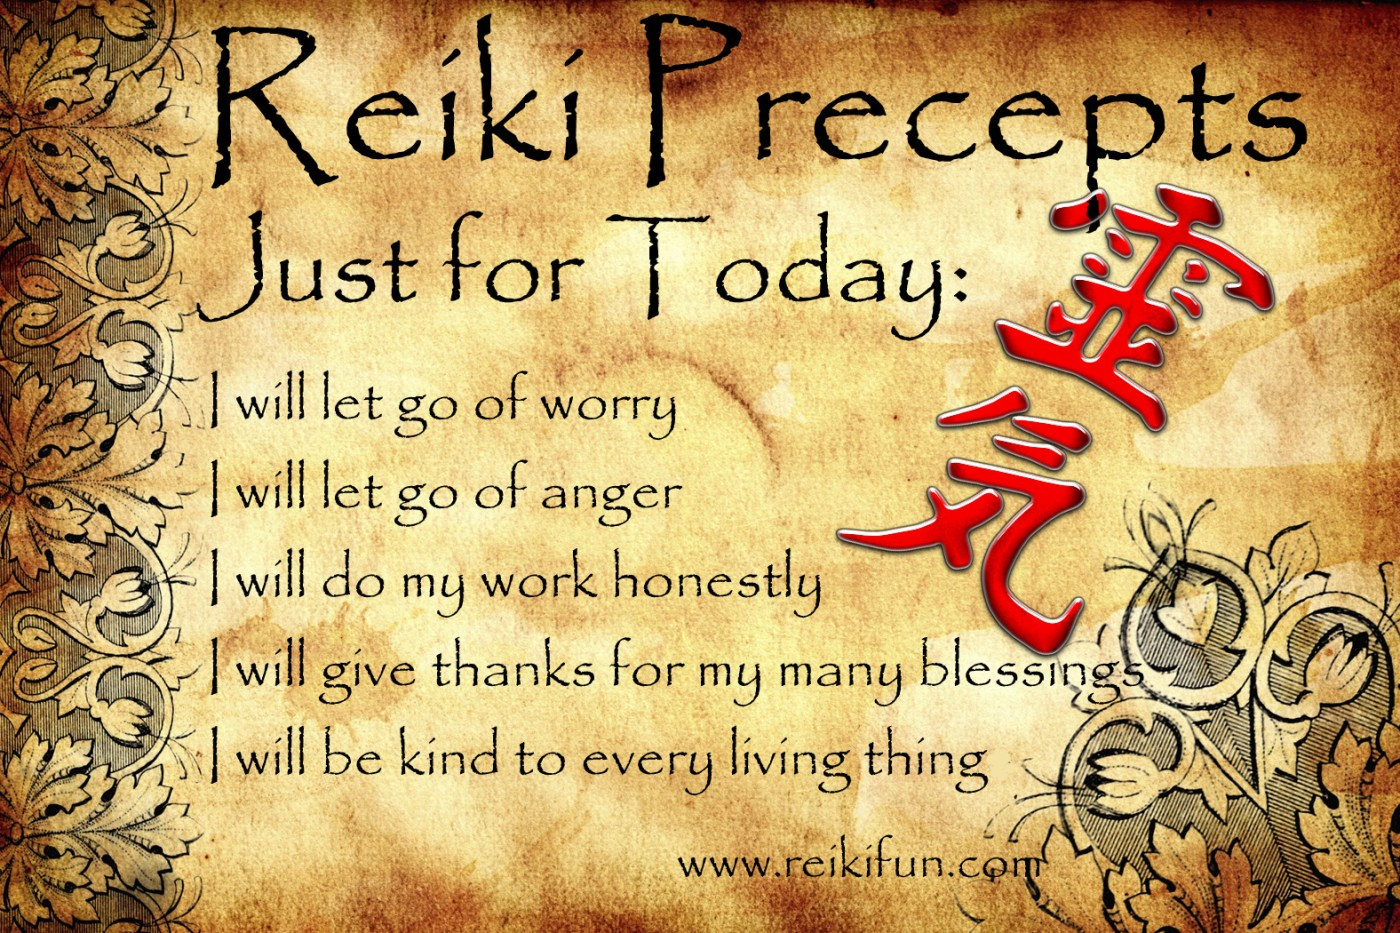 Twenty Year Reiki Anniversary - Providence Life Coaching and Reiki Counseling - ReikiPreceptsEnglish